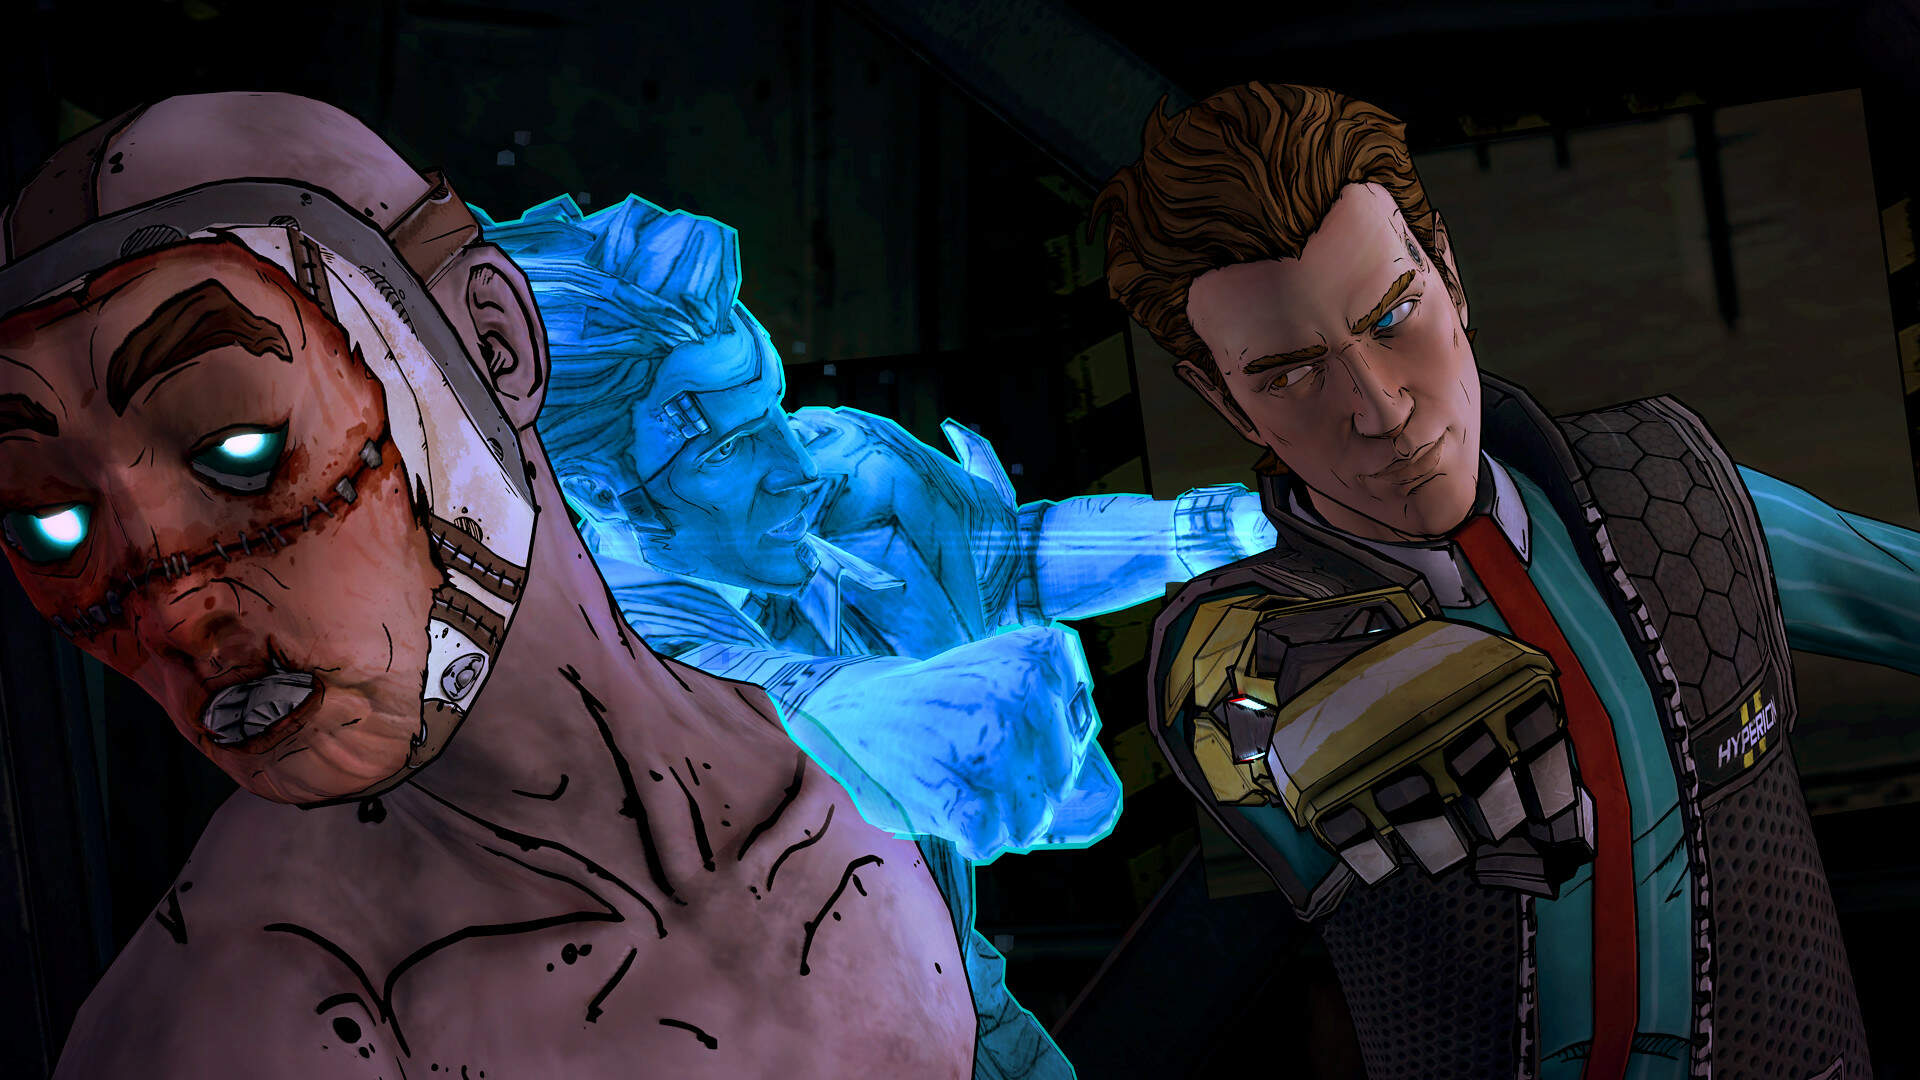 Leaked Videos Show a Supposed Tales From the Borderlands Re-Release